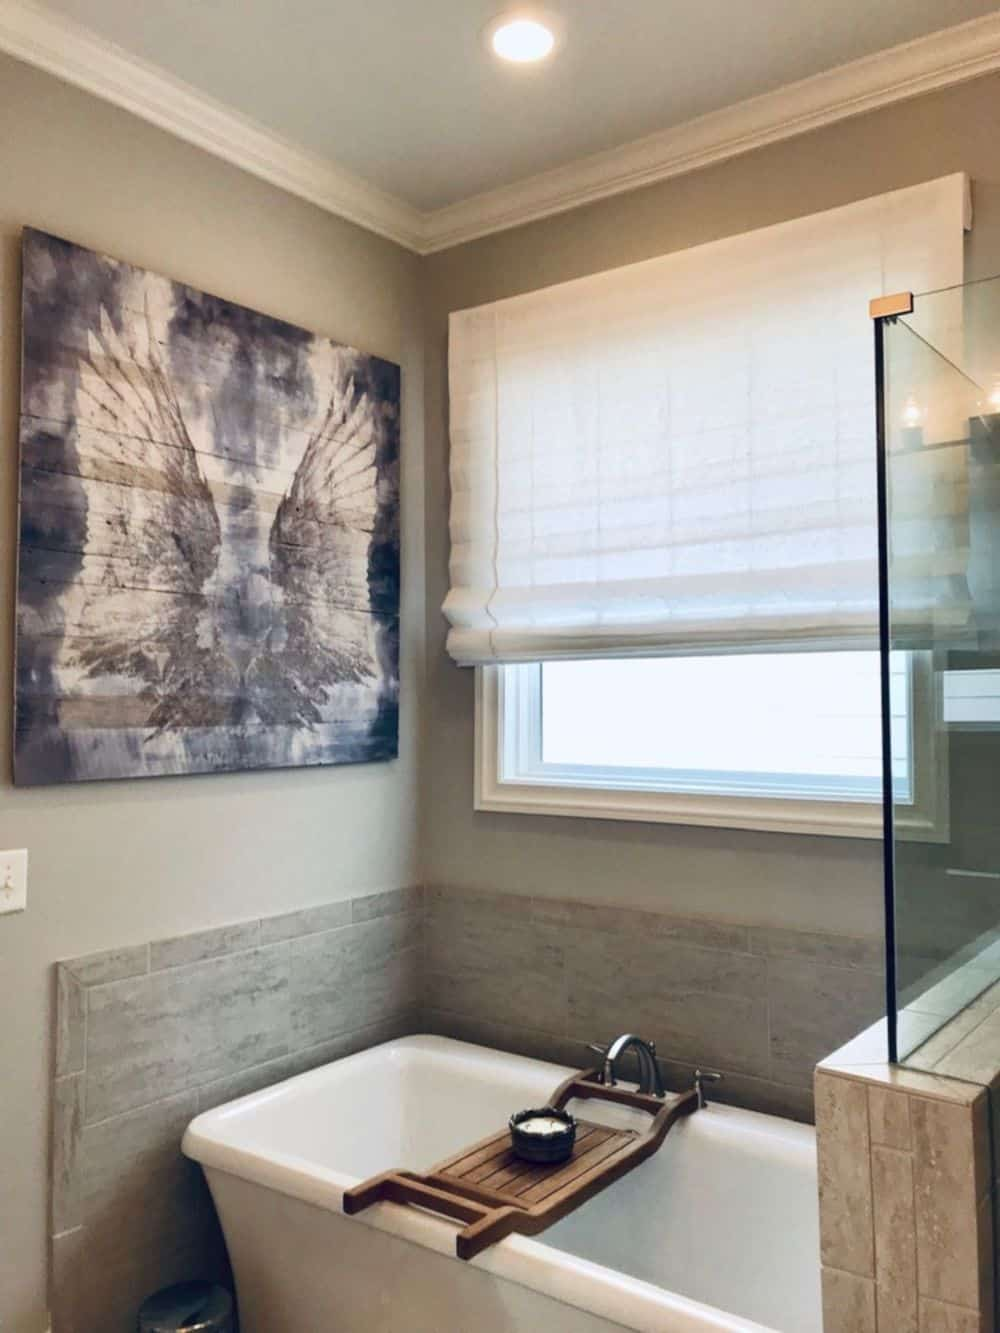 A primary bathroom featuring a walk-in shower and a freestanding tub set near the window with a Roman-style window shade. The wall decor looks very attractive.